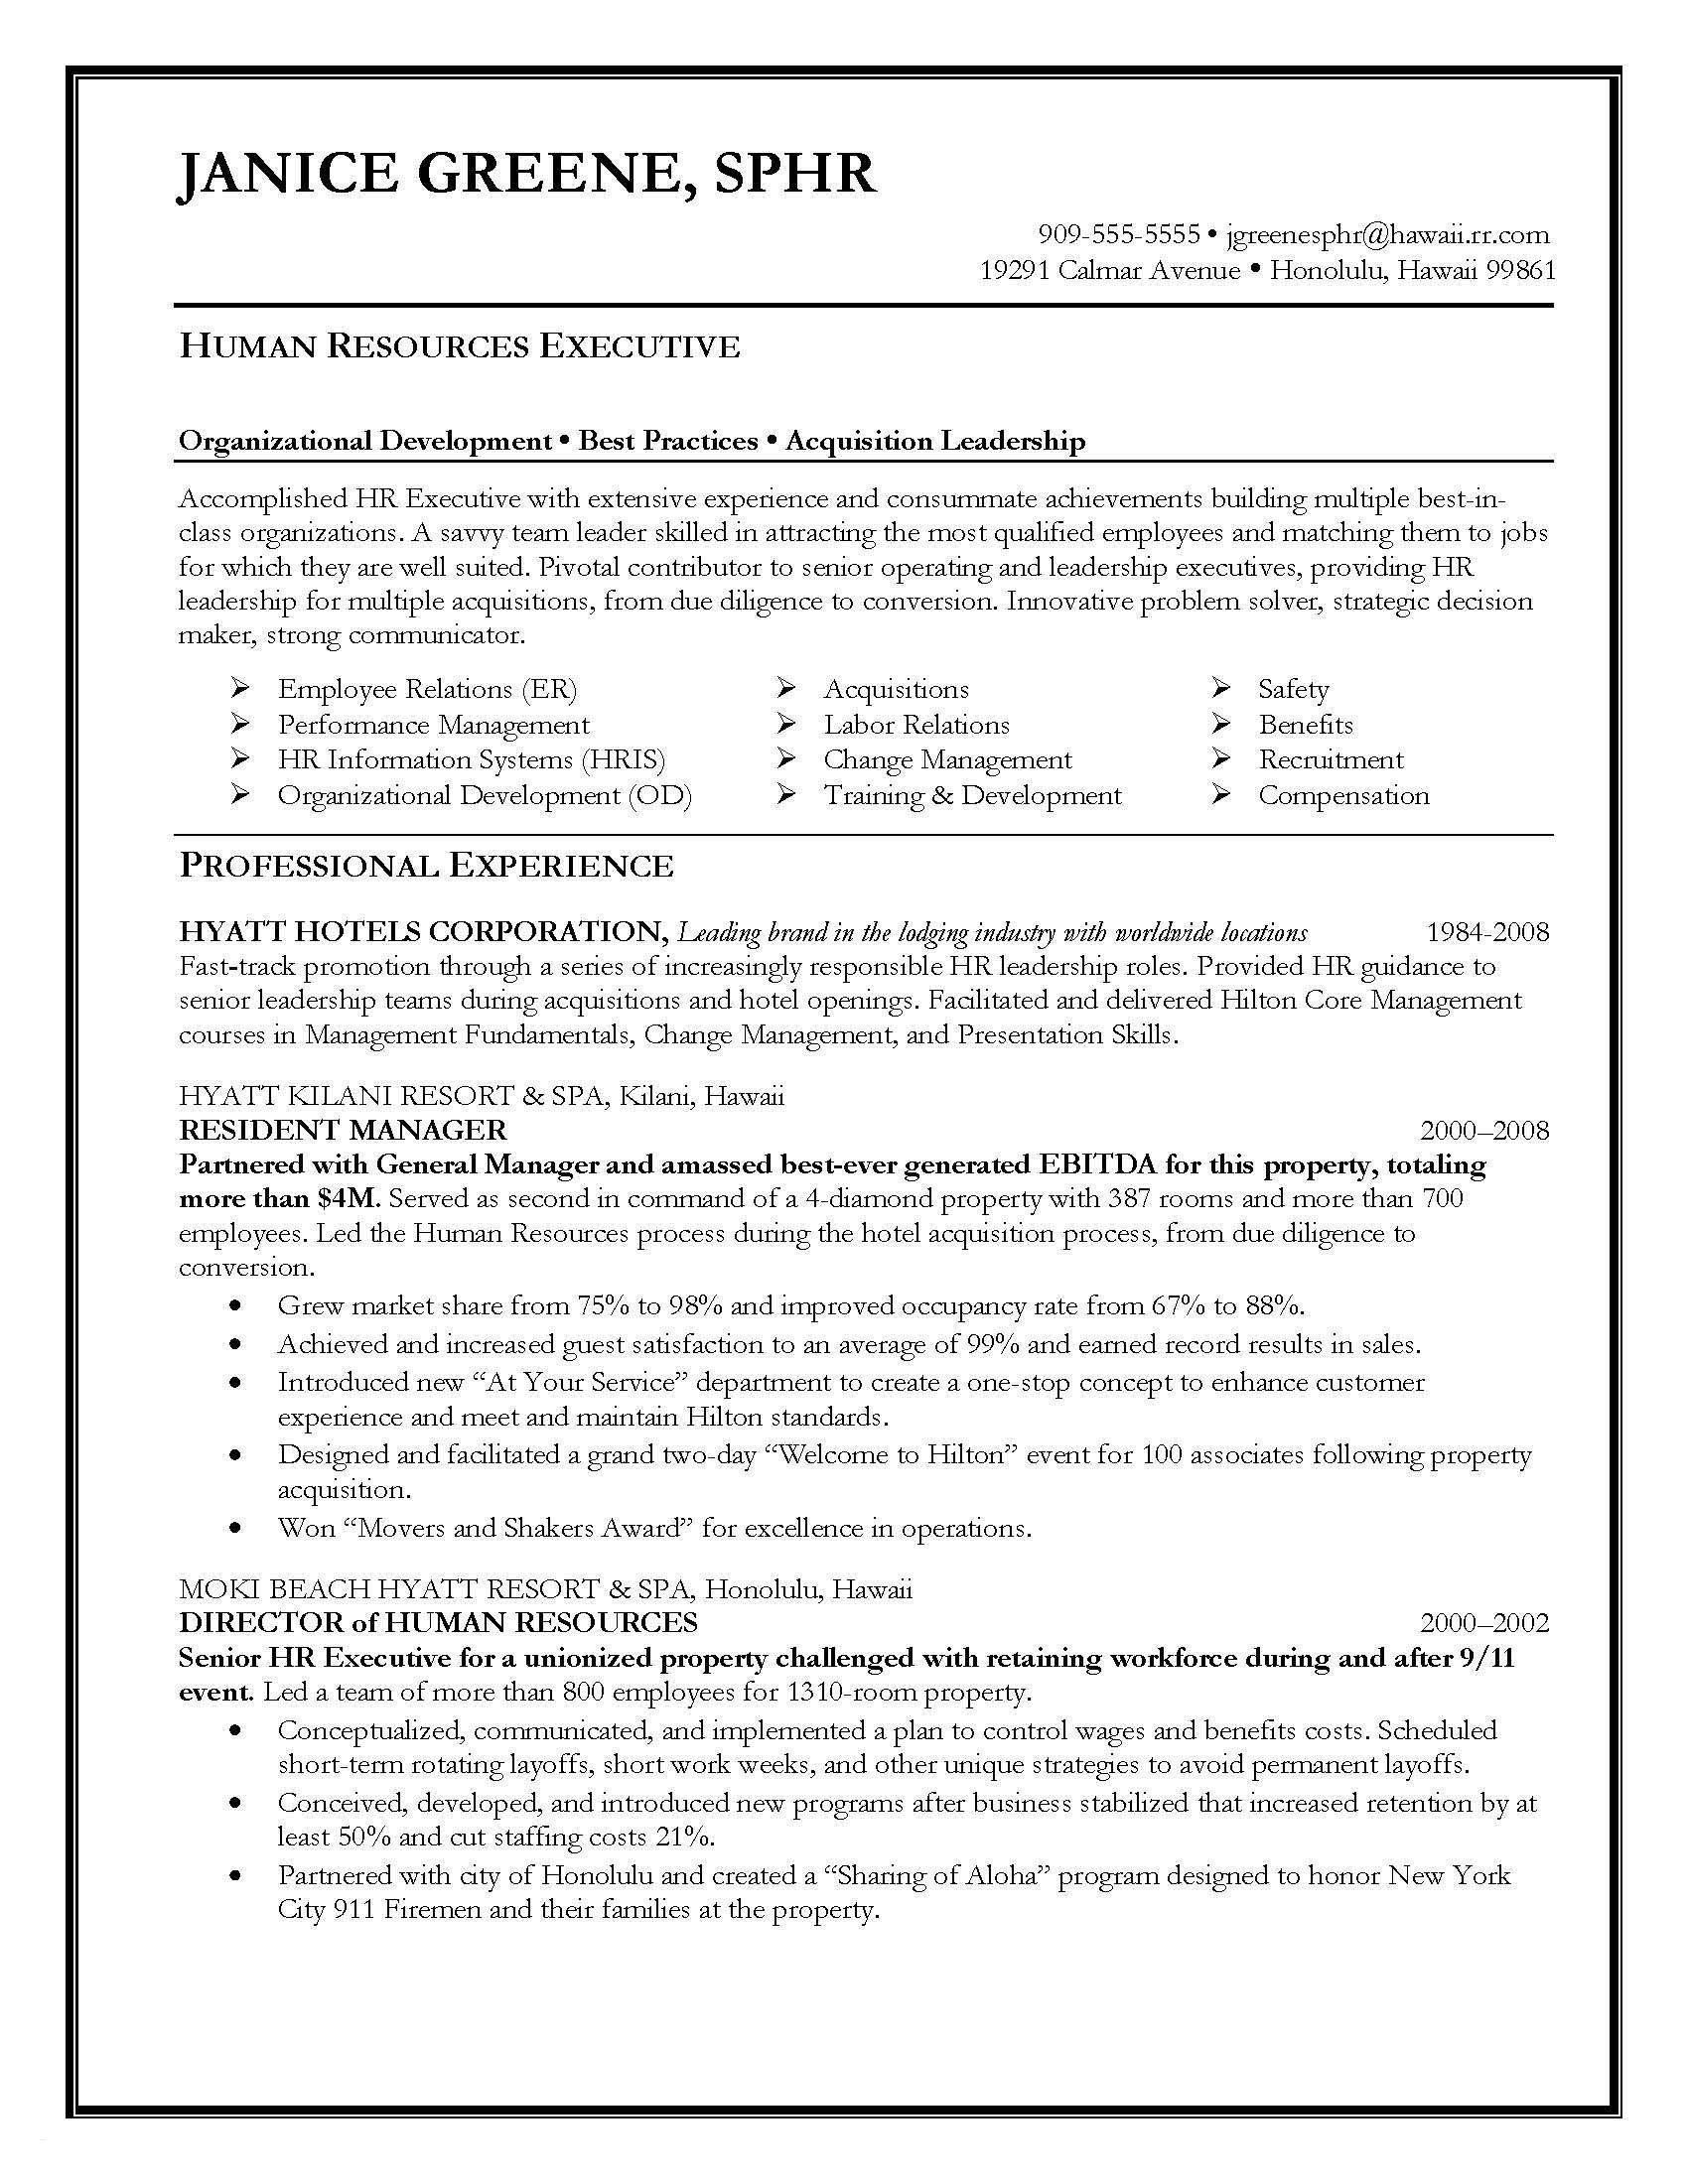 Best Resume Writers - 25 Technical Resume Writer